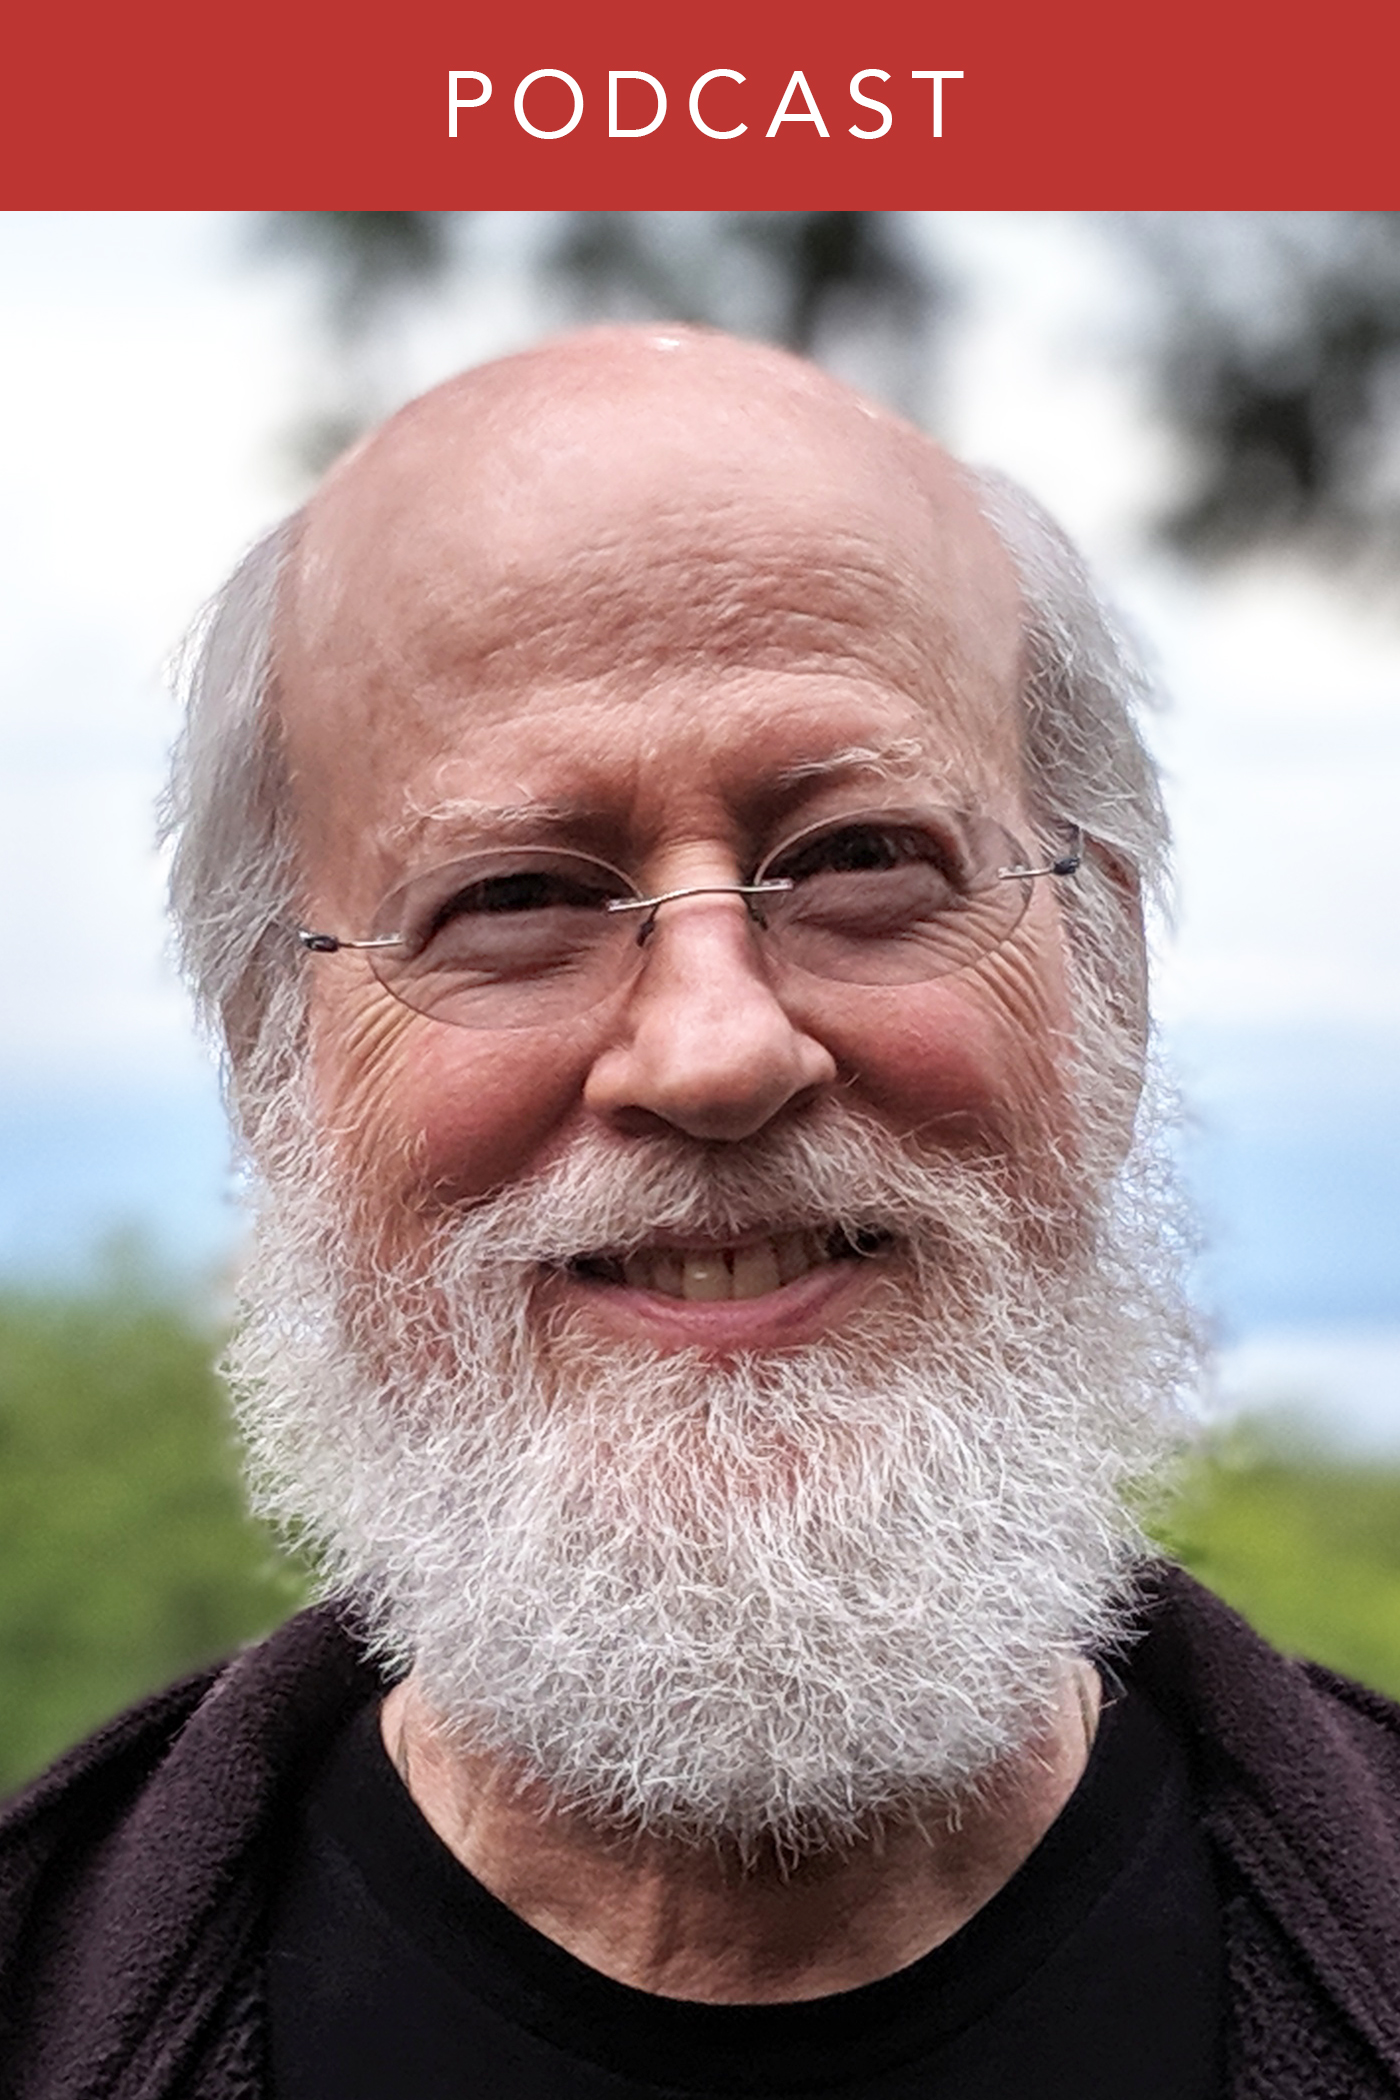 Cyrus Stearns: Translating for the Great Sakya Masters - The